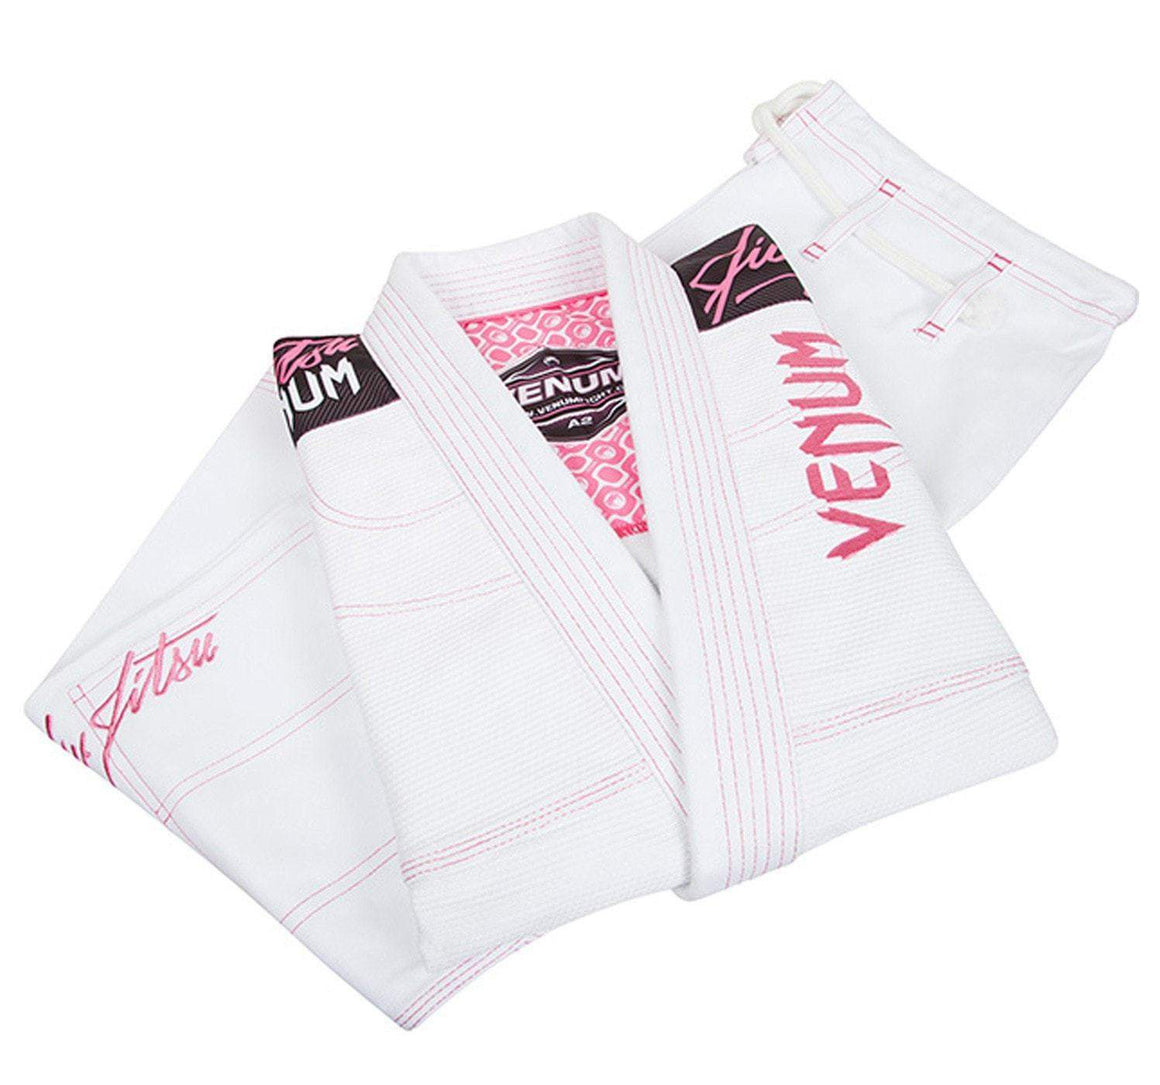 Venum Challenger 2.0 Women's BJJ Gi - White - Jacket and Pants